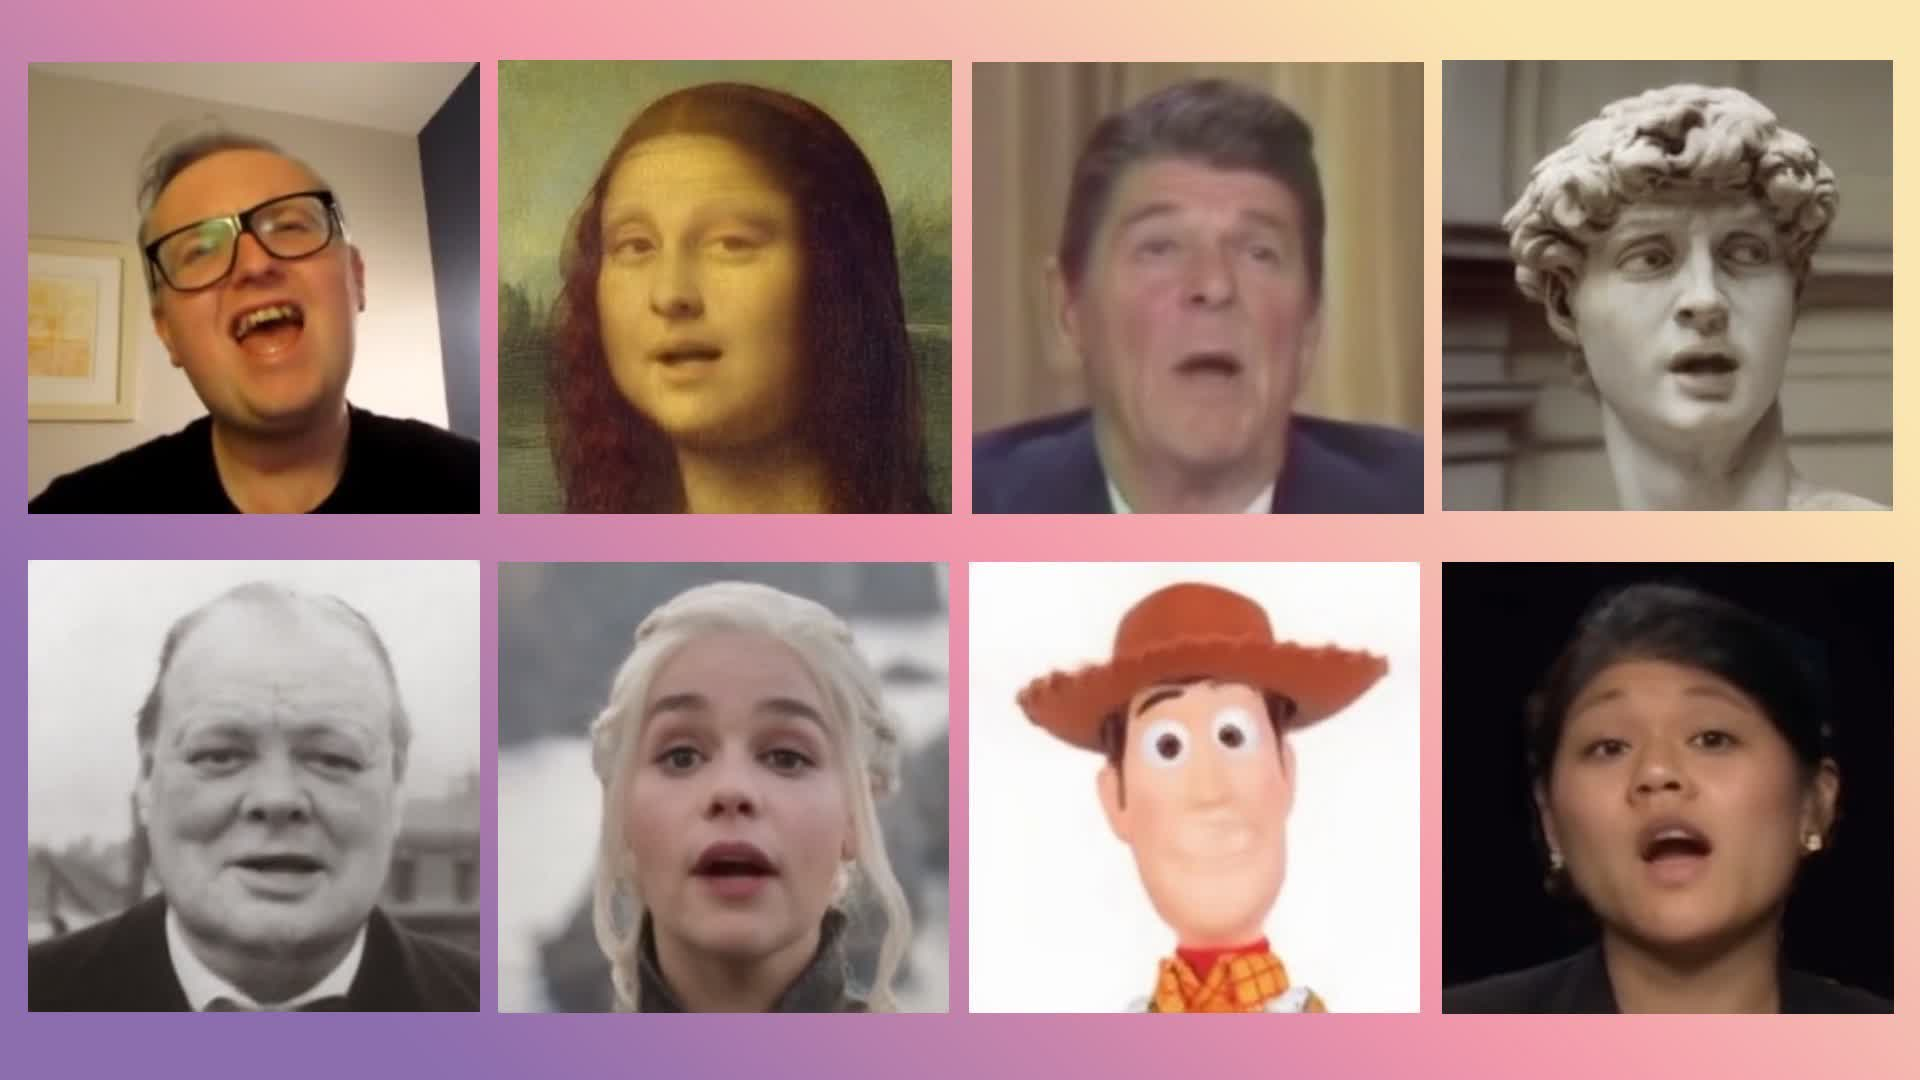 Bizarre-looking deepfake memes are easy-to-make with online tools